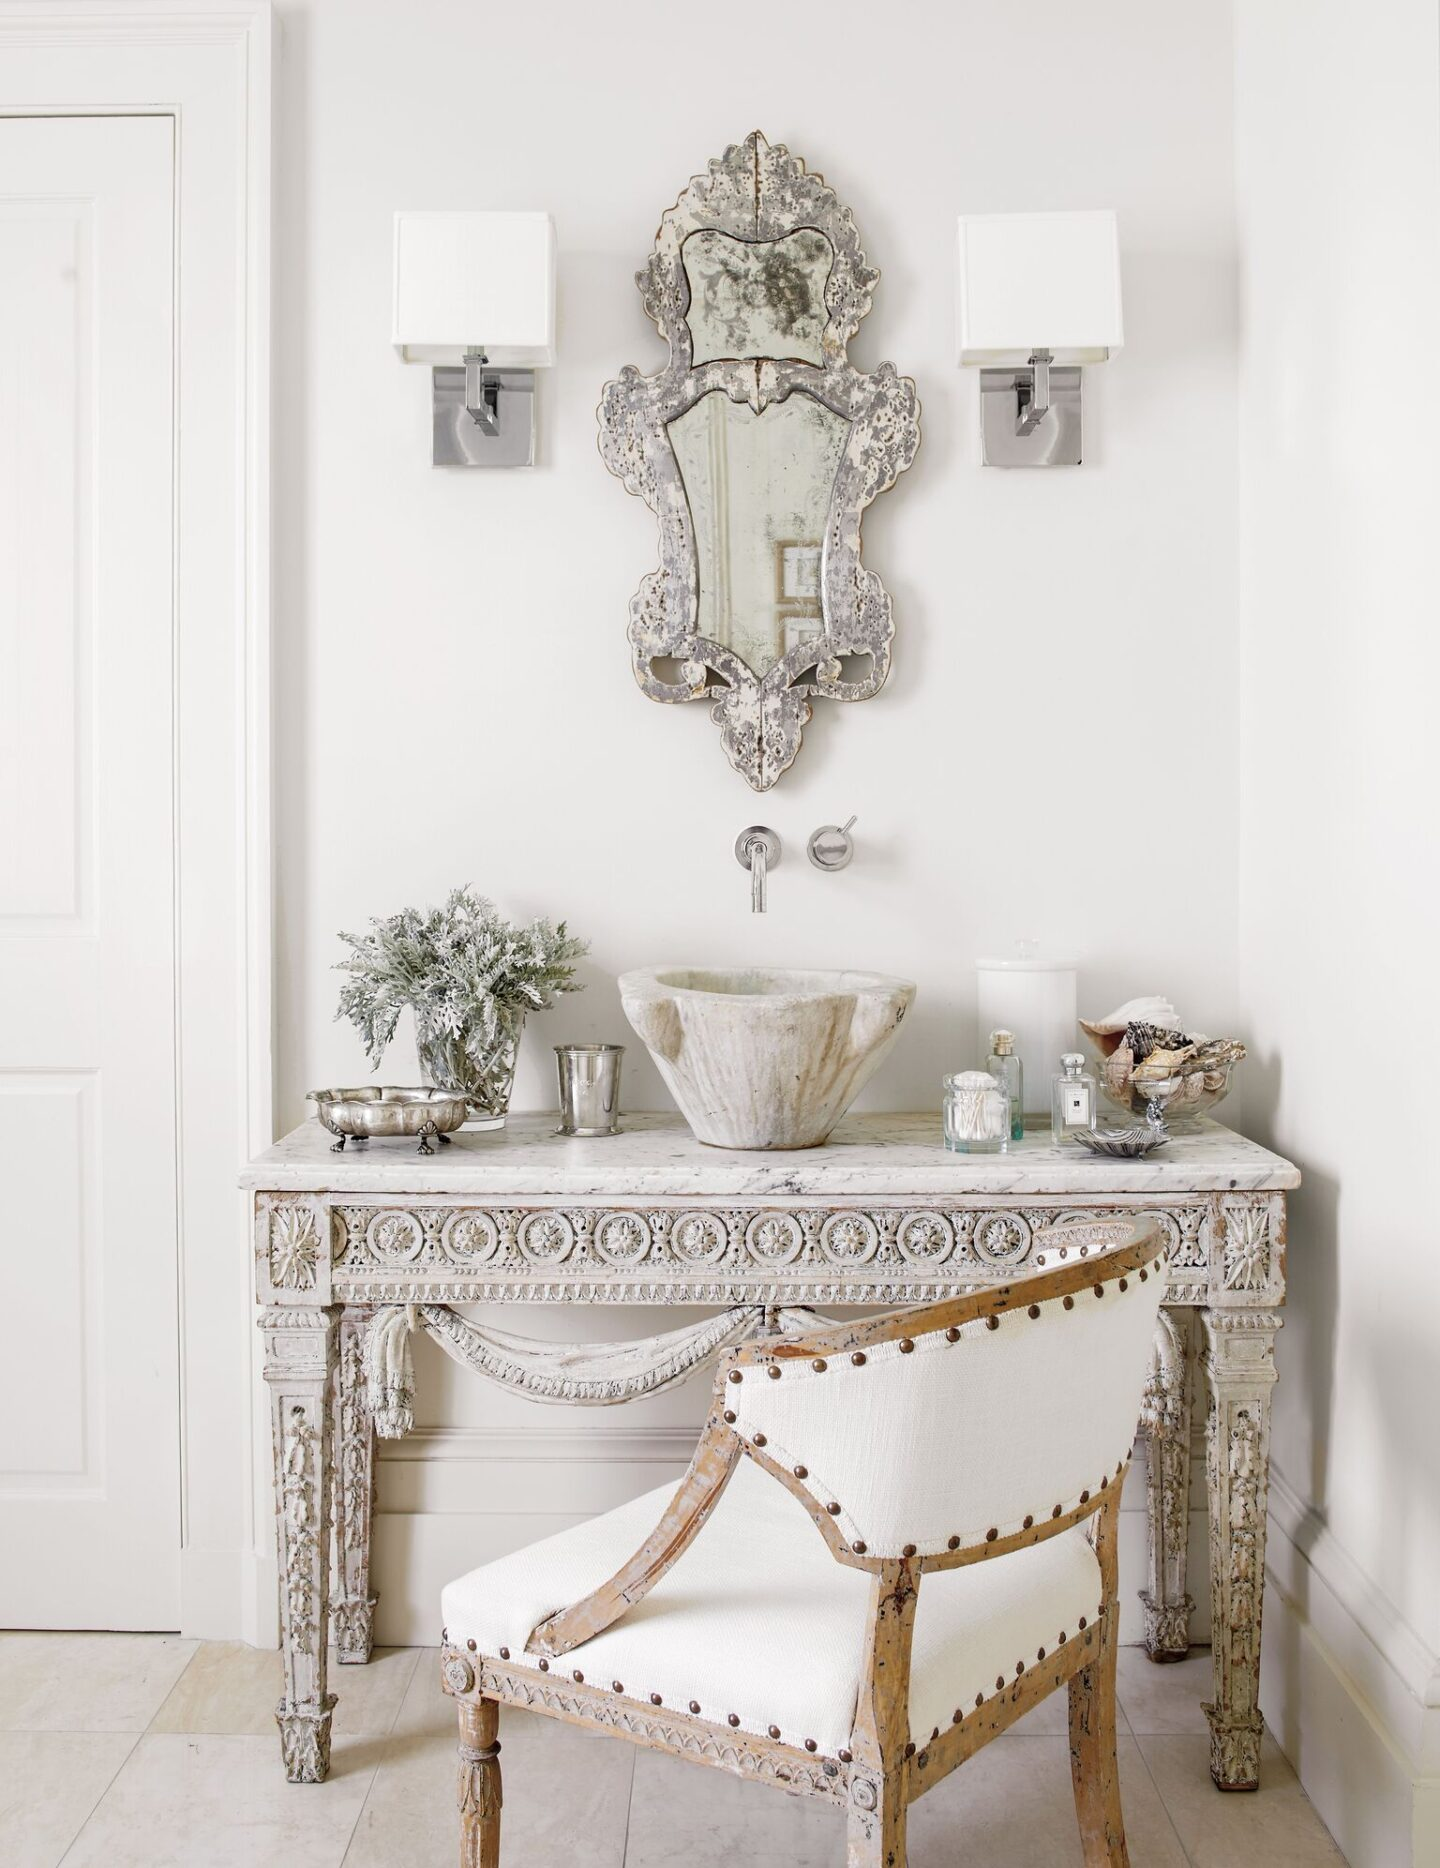 Elegant and luxe, this master bathroom vanity was created from an 18th century French painted console. An 18th century mortar became a sink which Shaw paired with an 18th century Swedish barrel-back chair. #tarashaw #oldworldstyle #interiordesign #antiques #swedishantiques #frenchantiques #stonesink